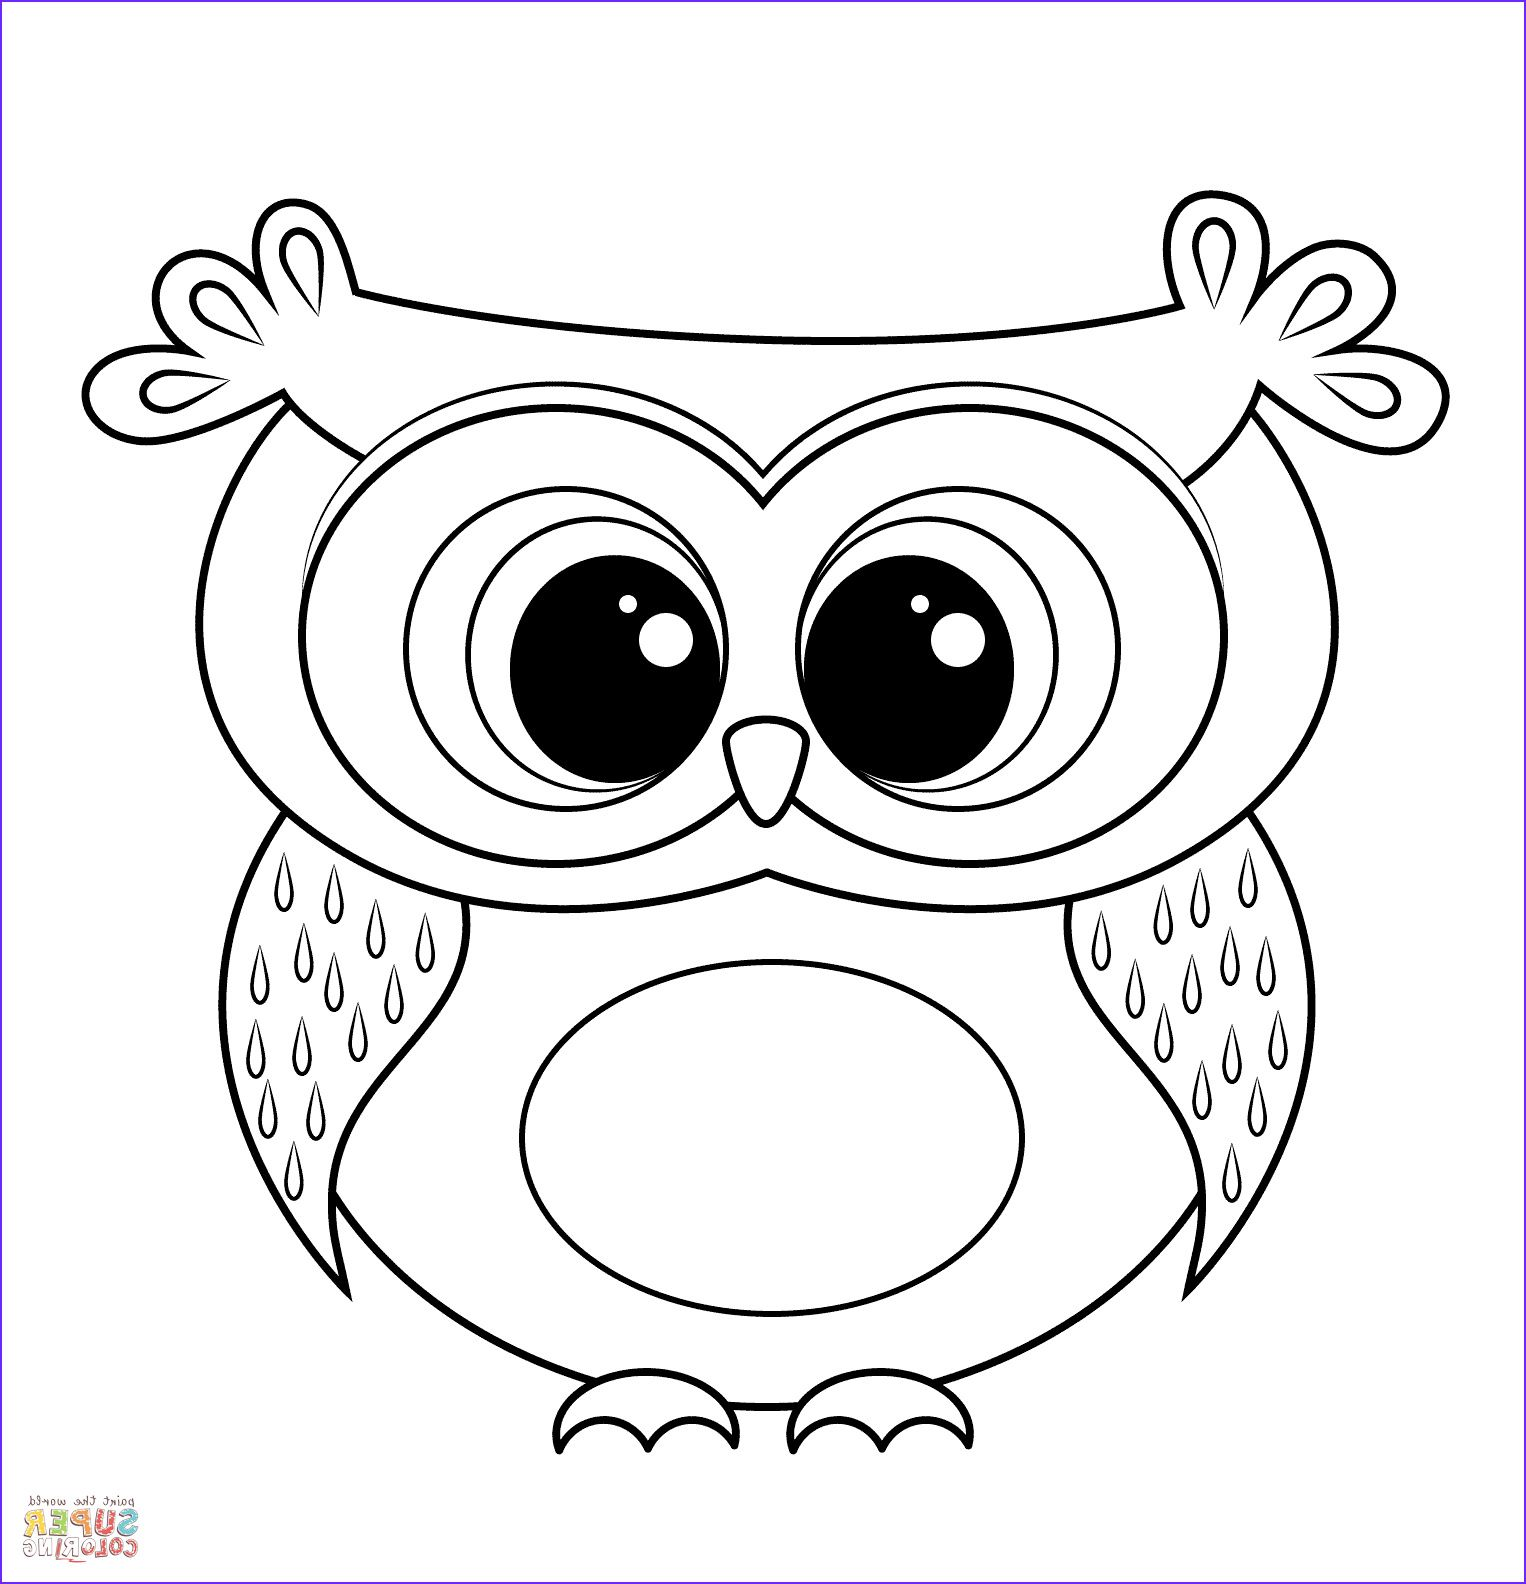 45 New Stock Of Coloring Book Owl Owl Coloring Pages Animal Coloring Pages Super Coloring Pages